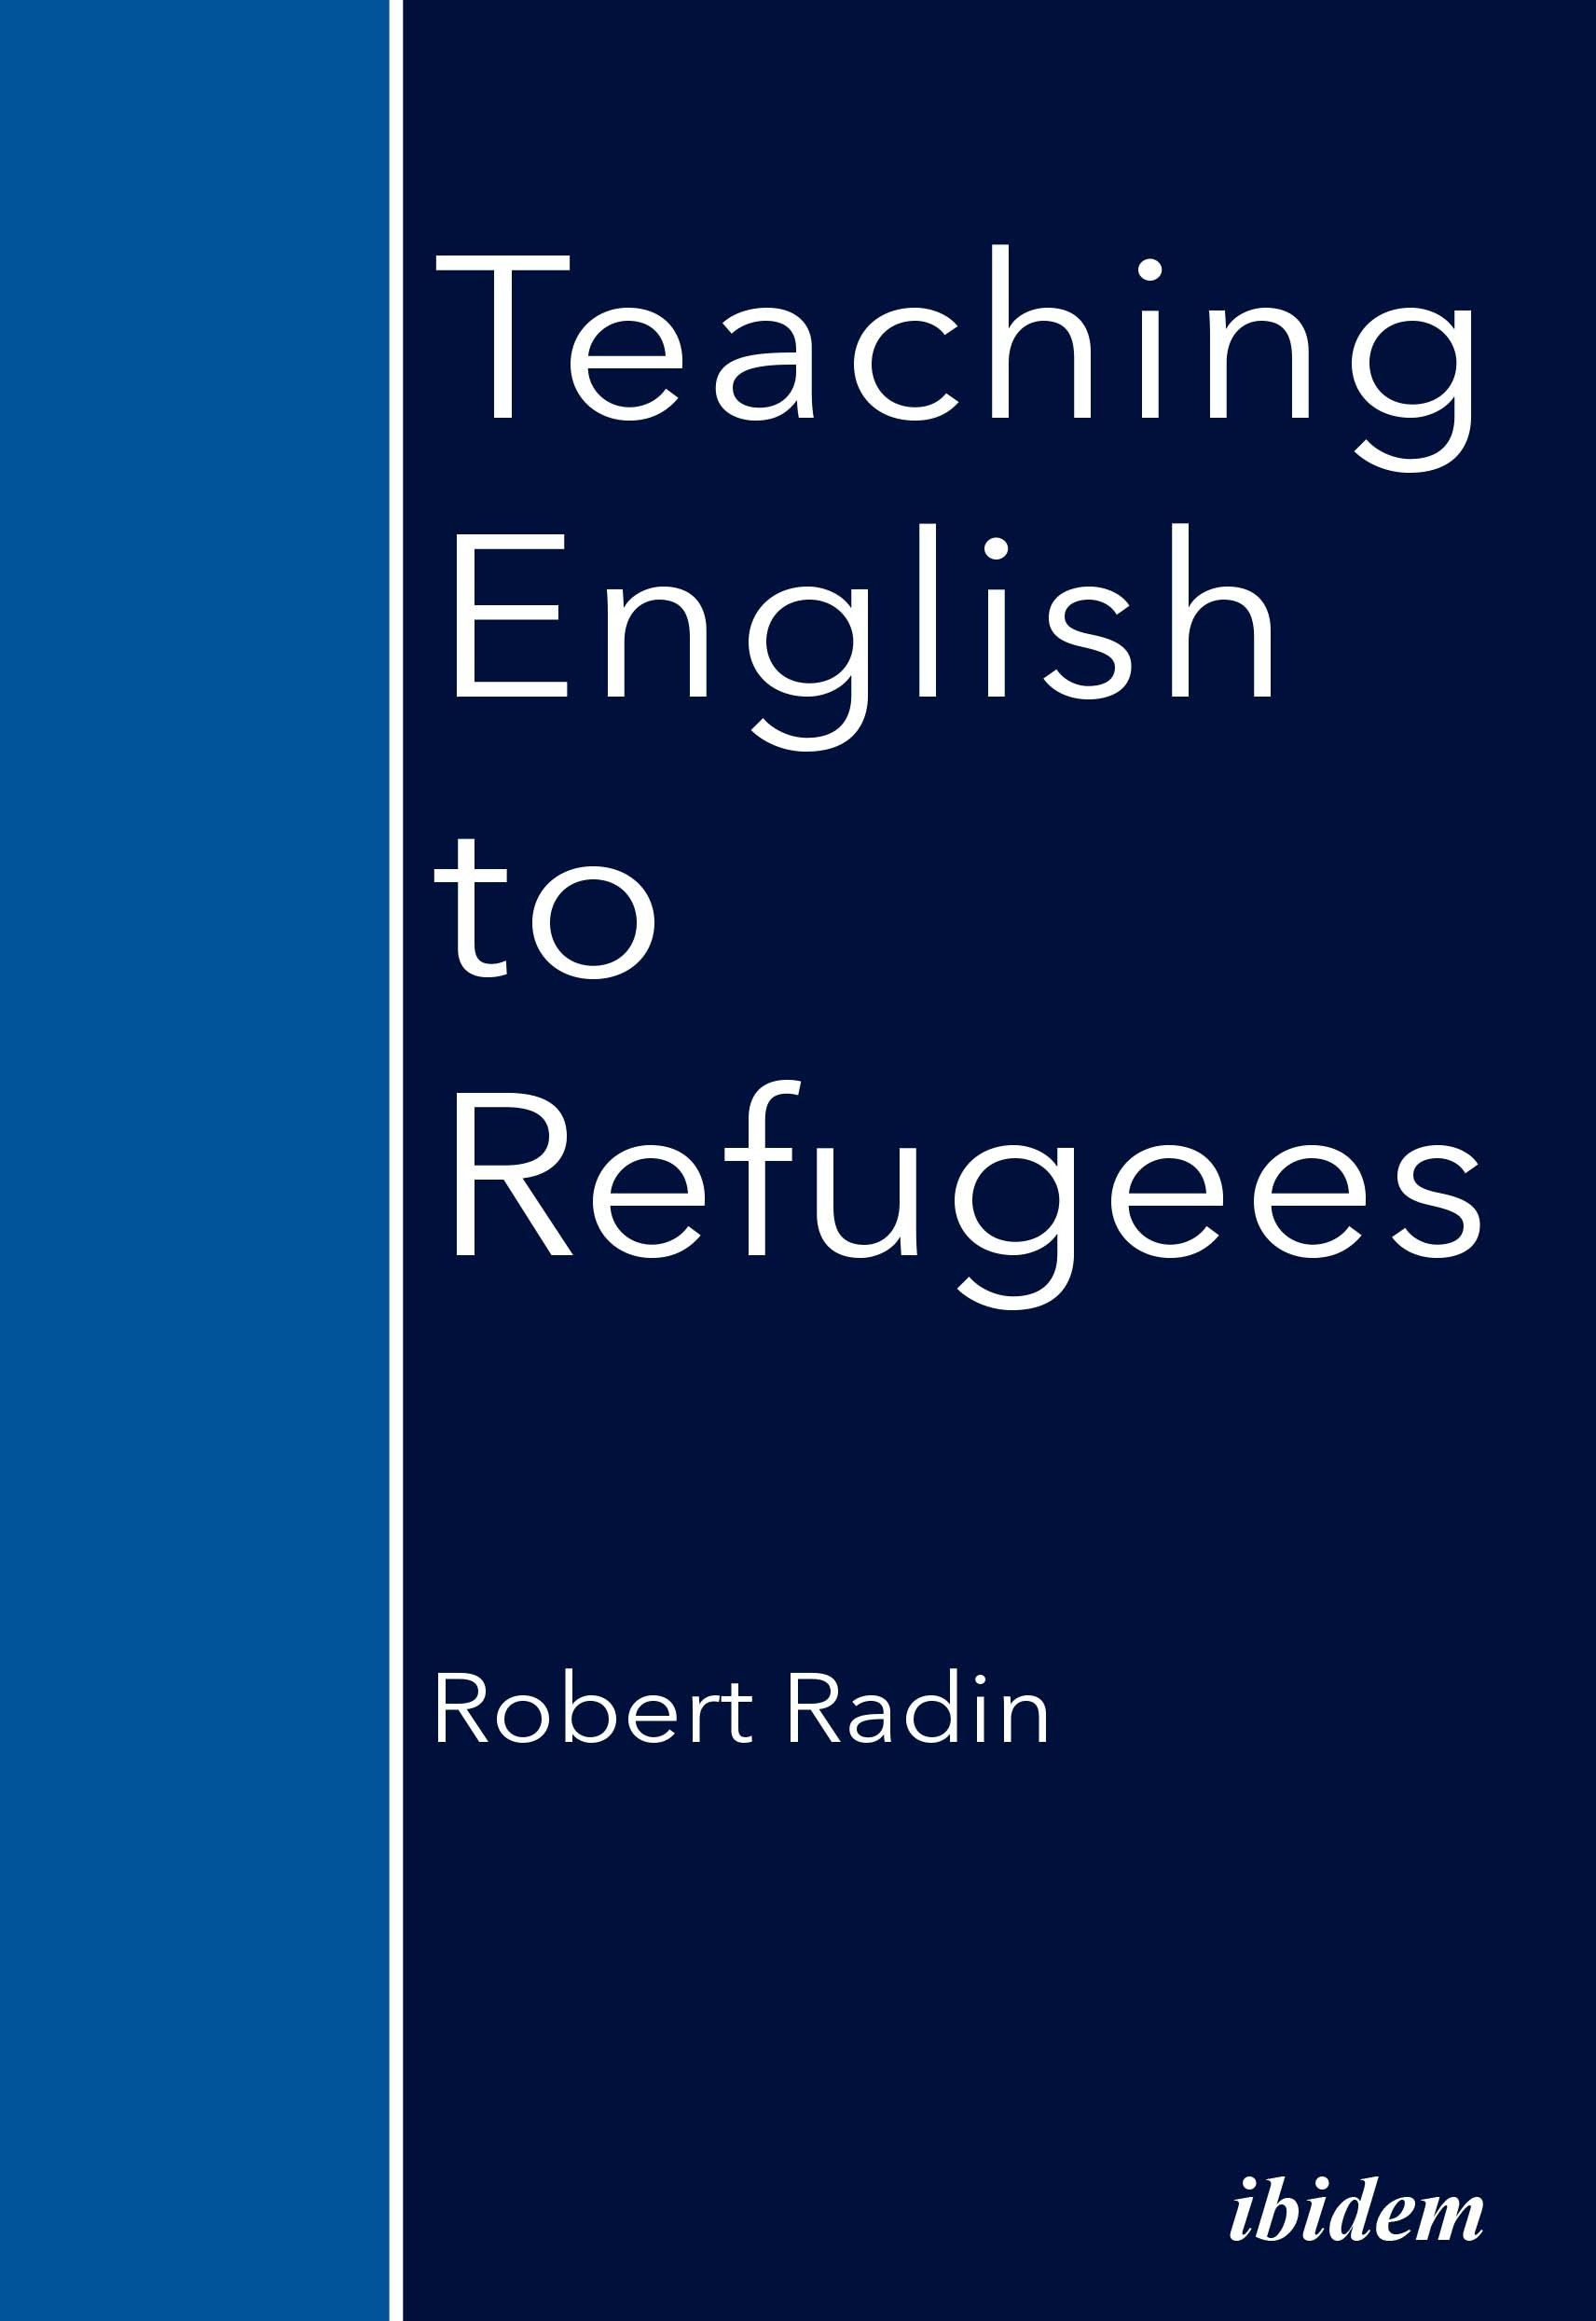 Teaching English to Refugees